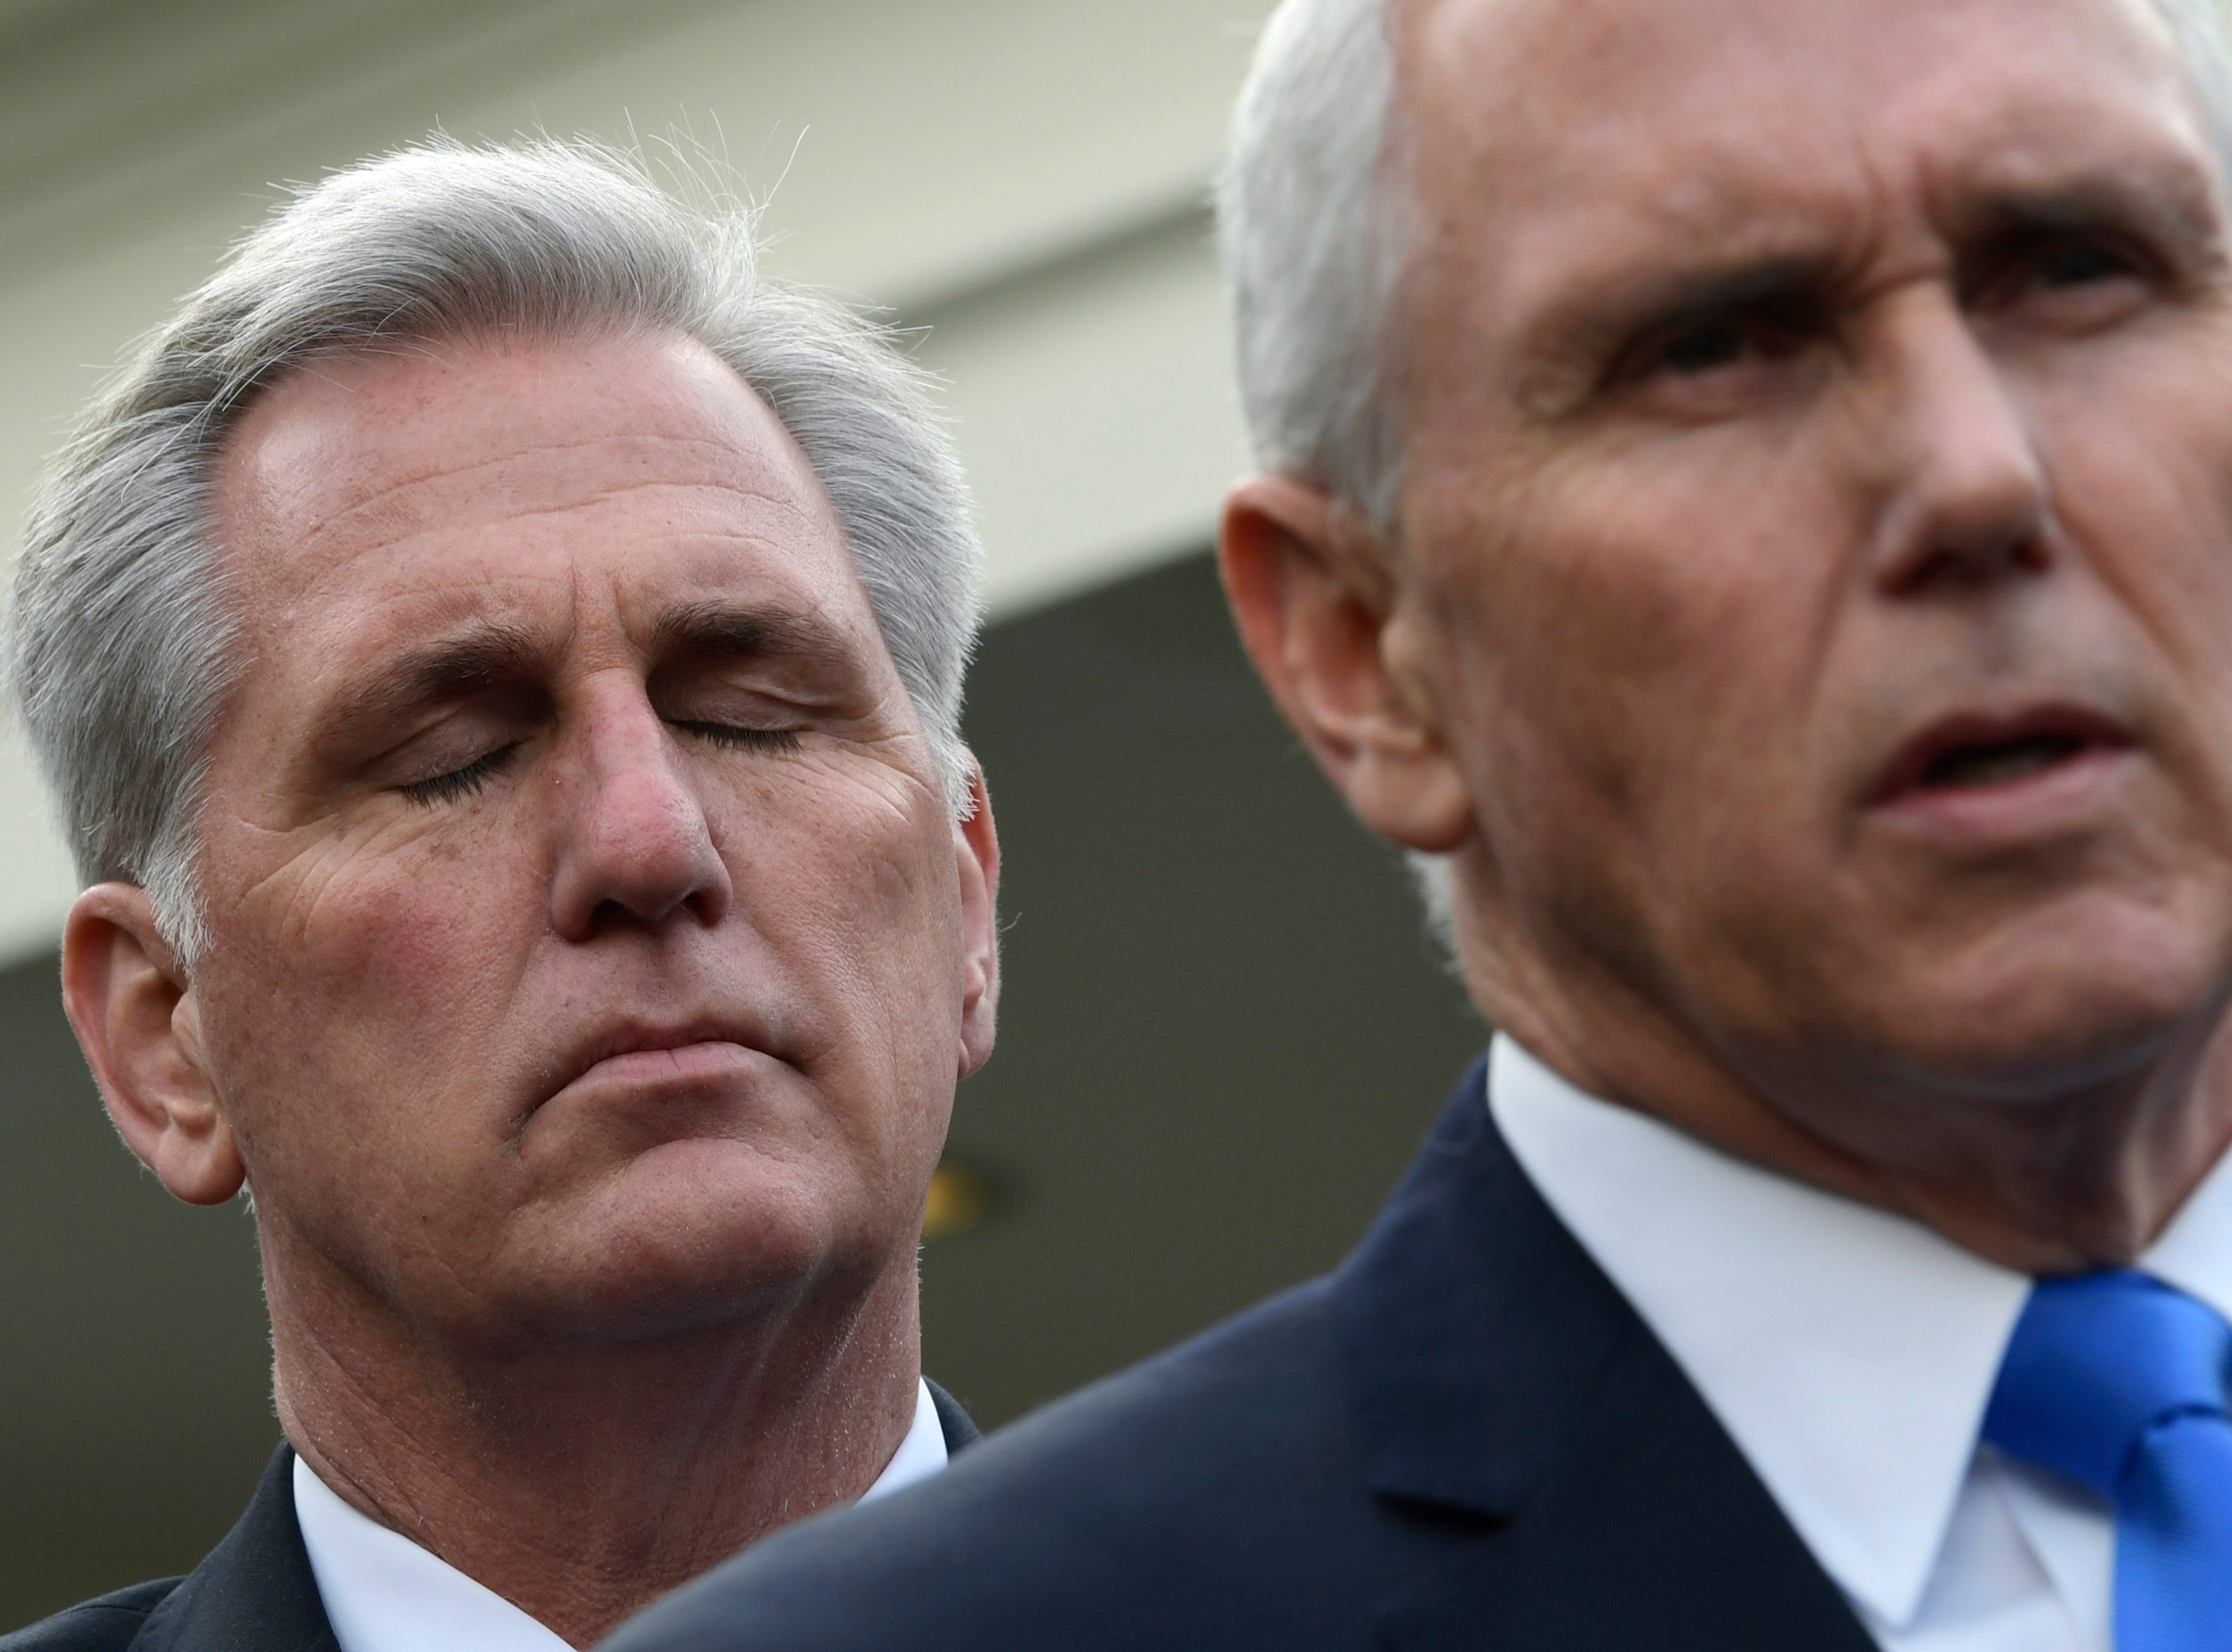 House Minority Leader Kevin McCarthy of Calif., left, listens as Vice President Mike Pence, right, speaks to reporters following a meeting with President Donald Trump and Democratic congressional leaders at the White House in Washington, Wednesday, Jan. 9, 2019.